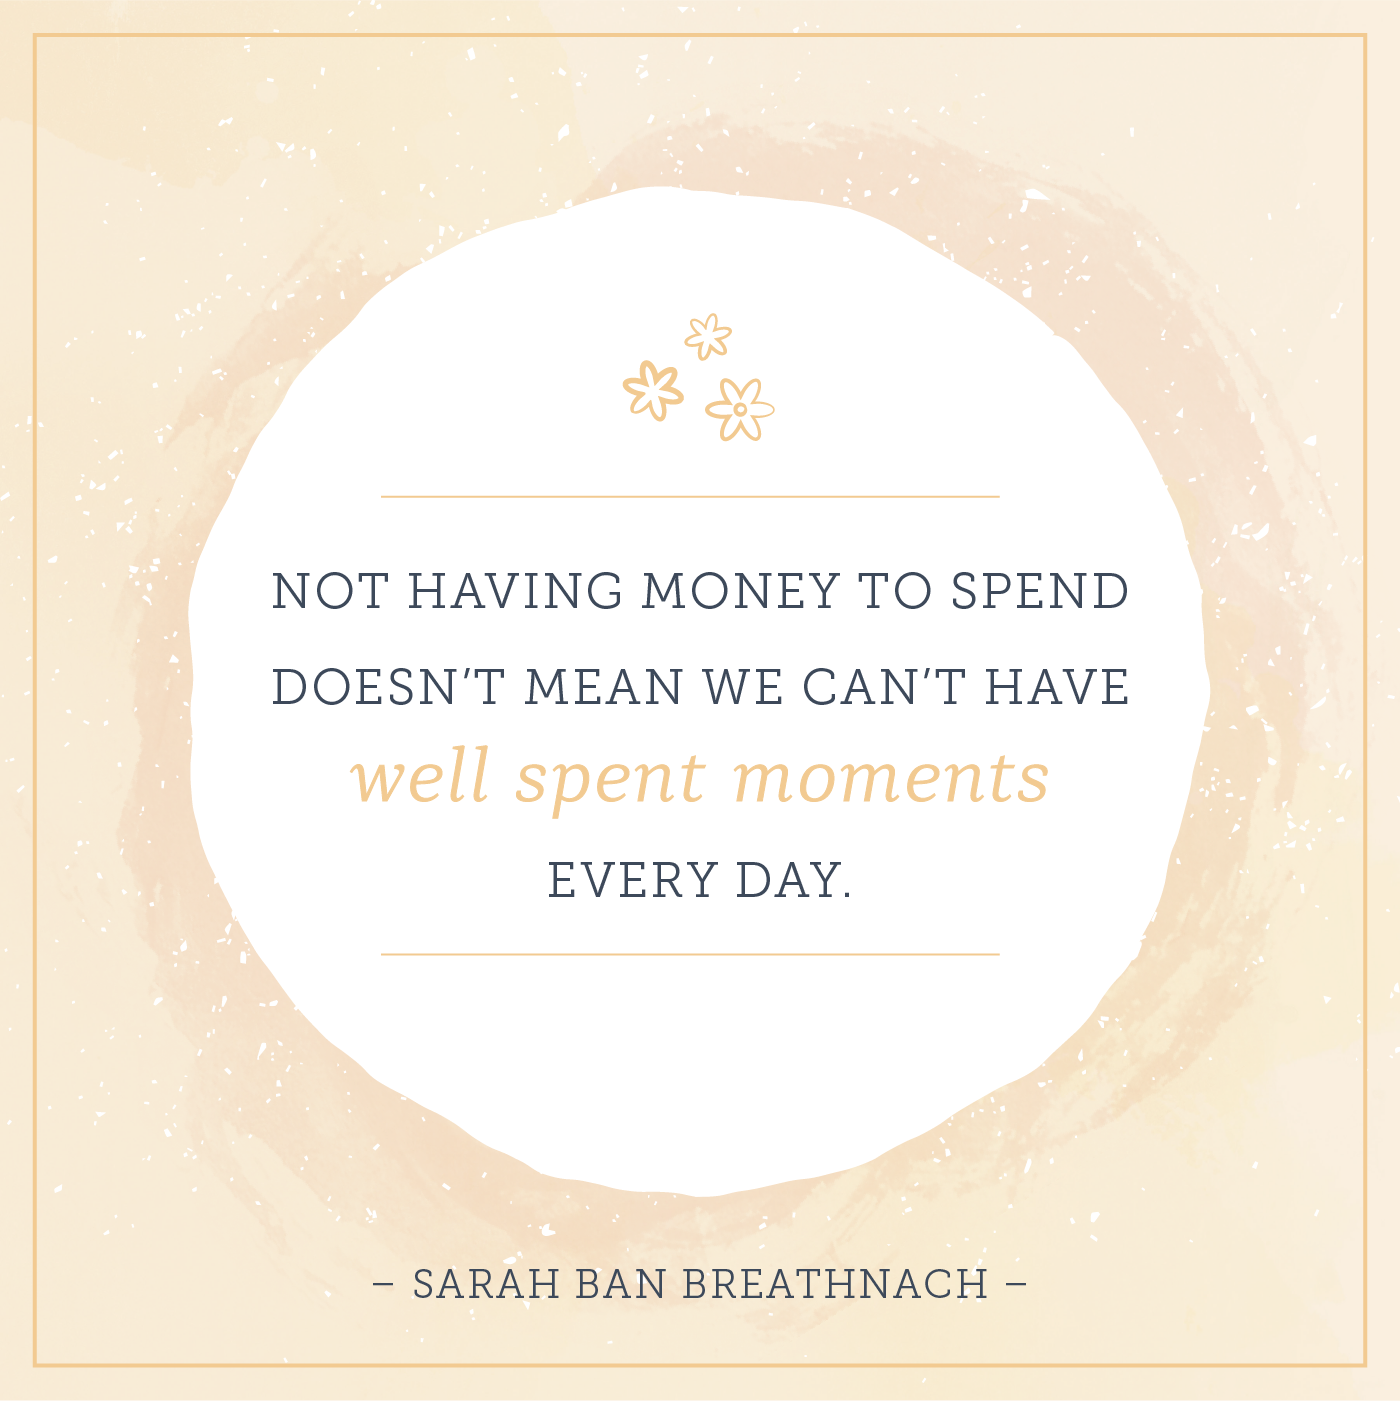 not having money to spend doesn't mean we can't have well spent moments every day